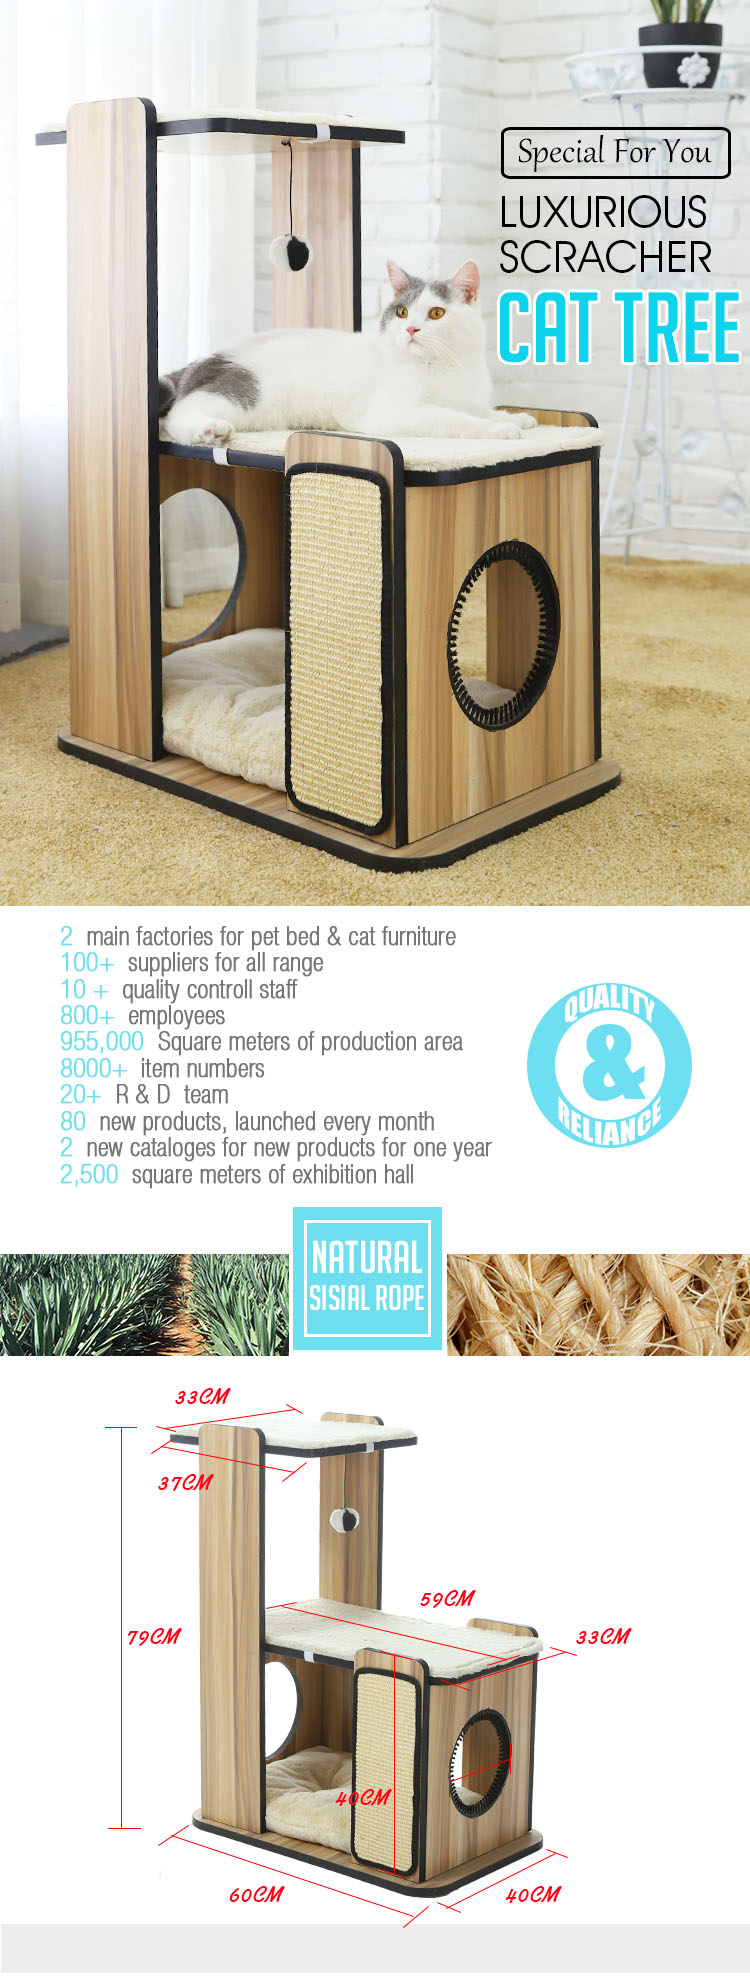 Tianyuan pet cat wood house,cat scratcher house wood